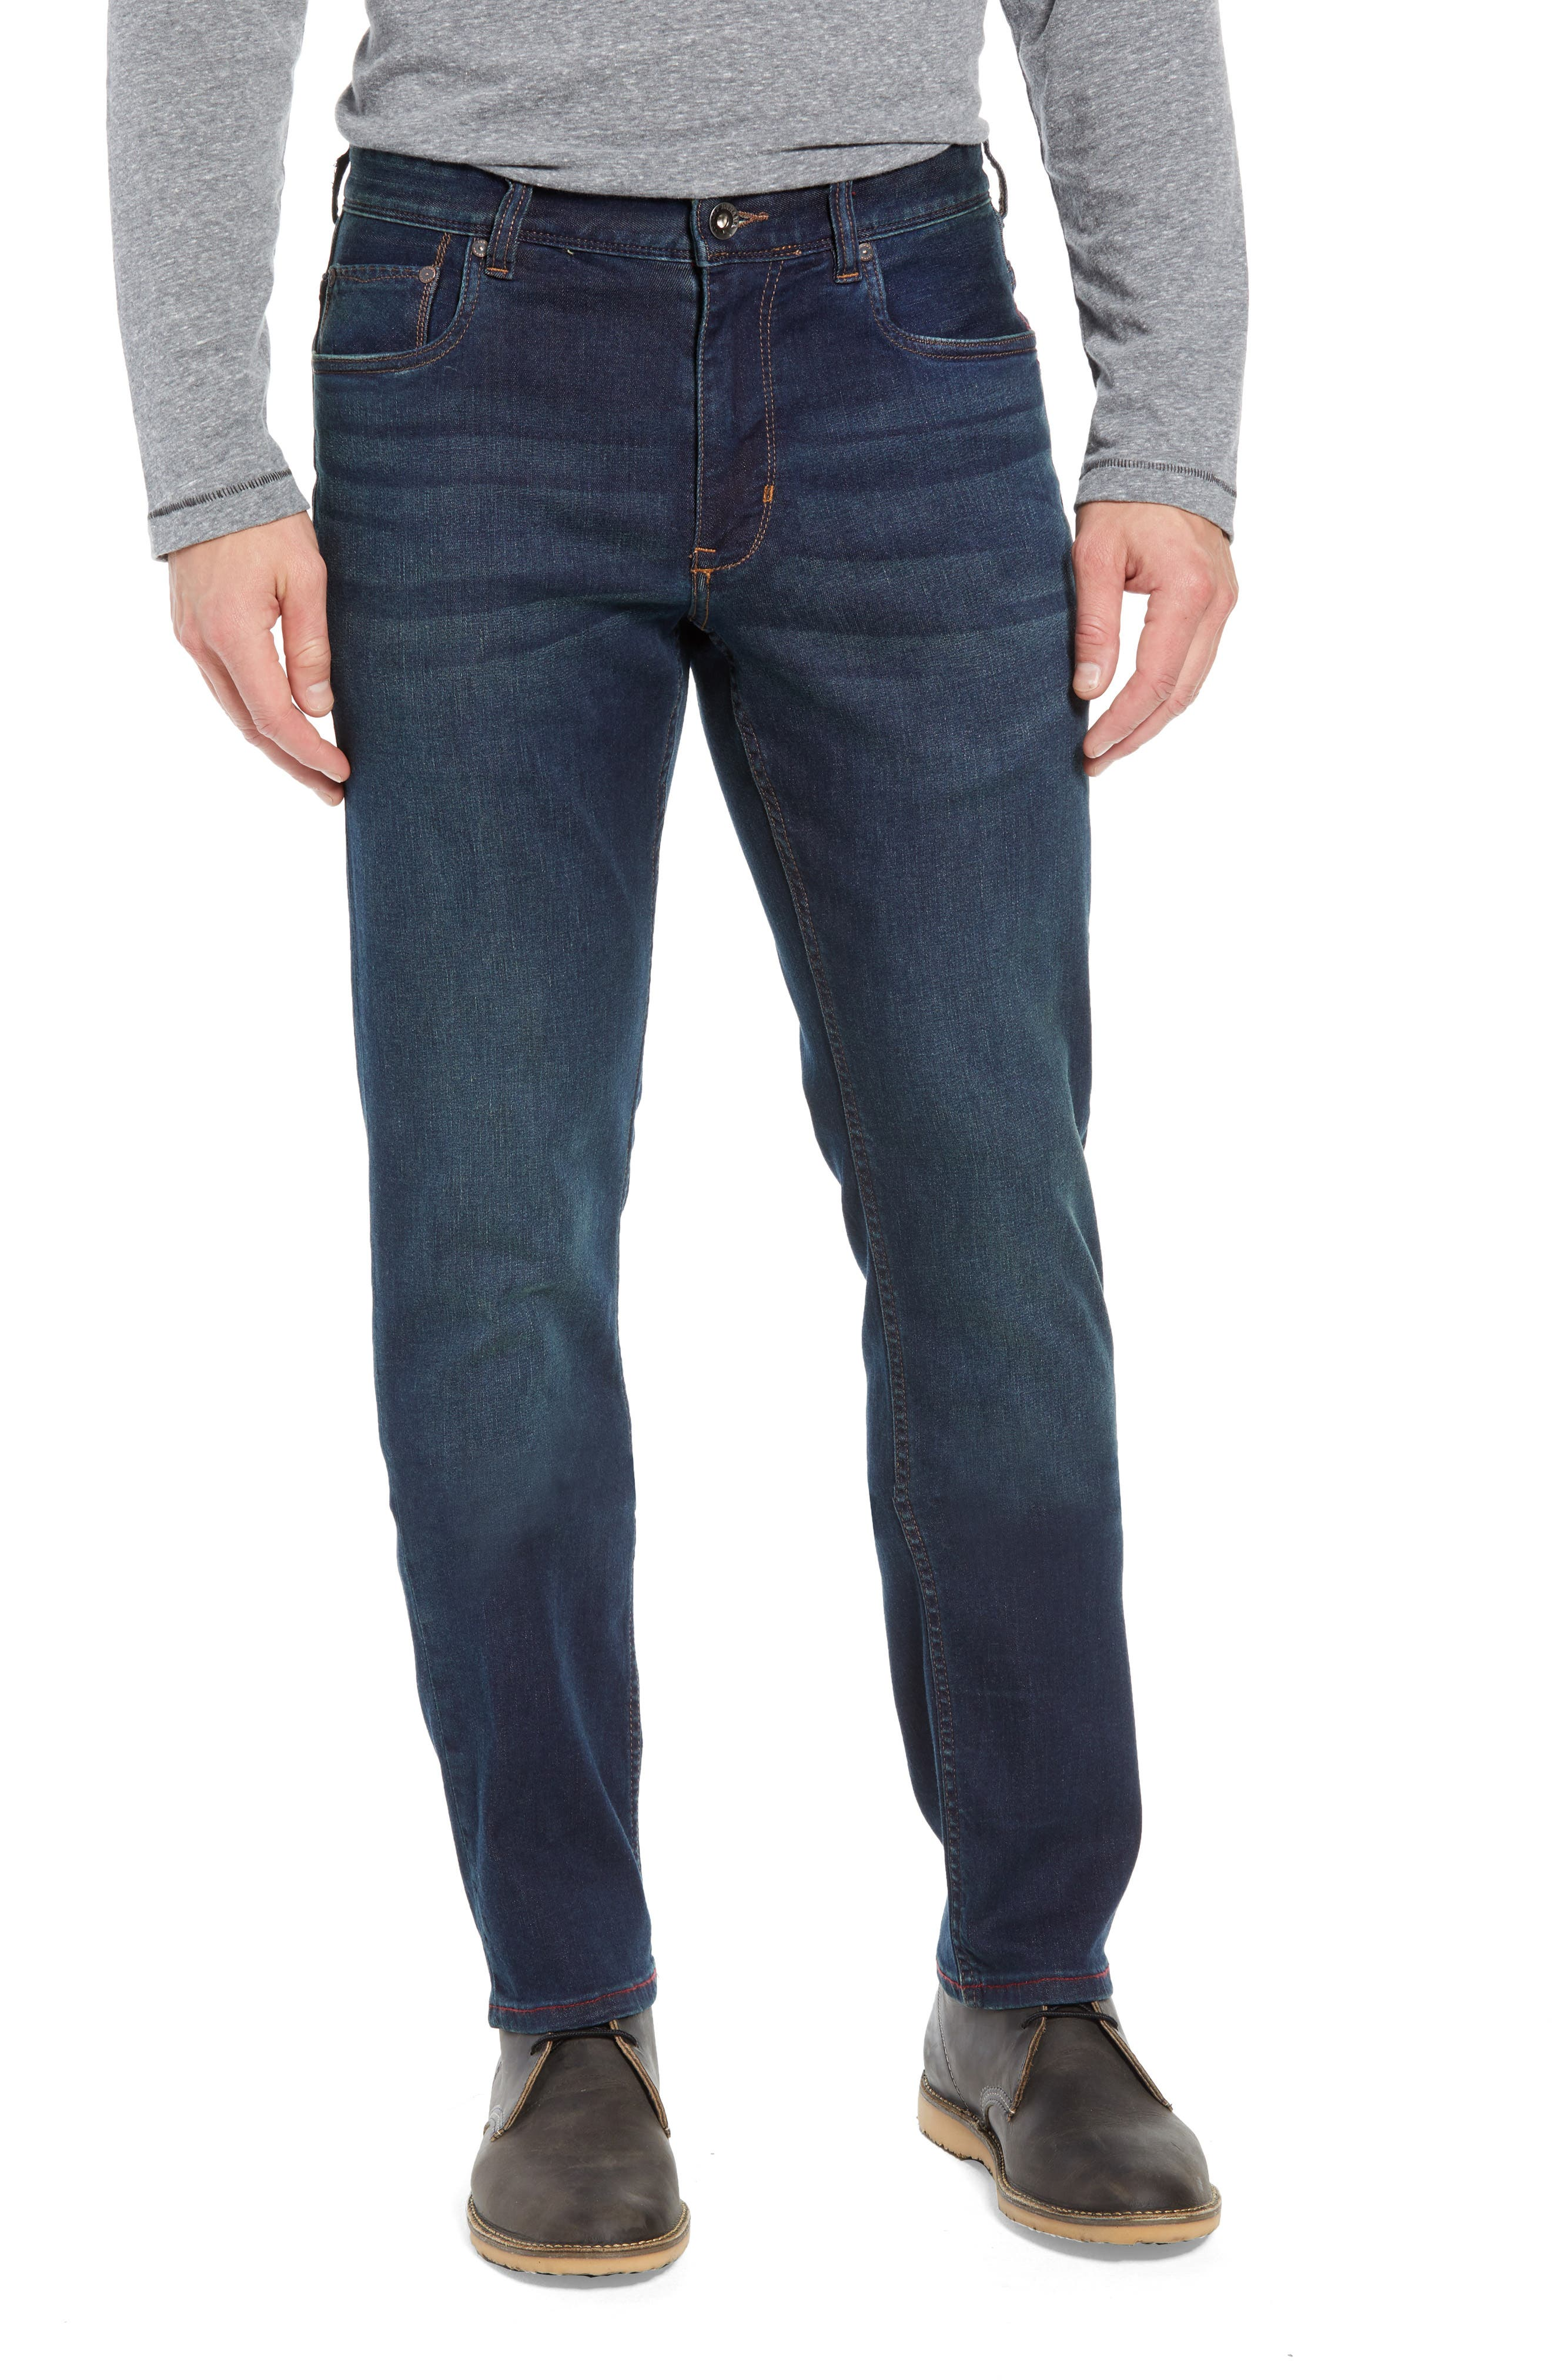 Costa Rica Vintage Regular Fit Jeans,                         Main,                         color, RINSE WASH